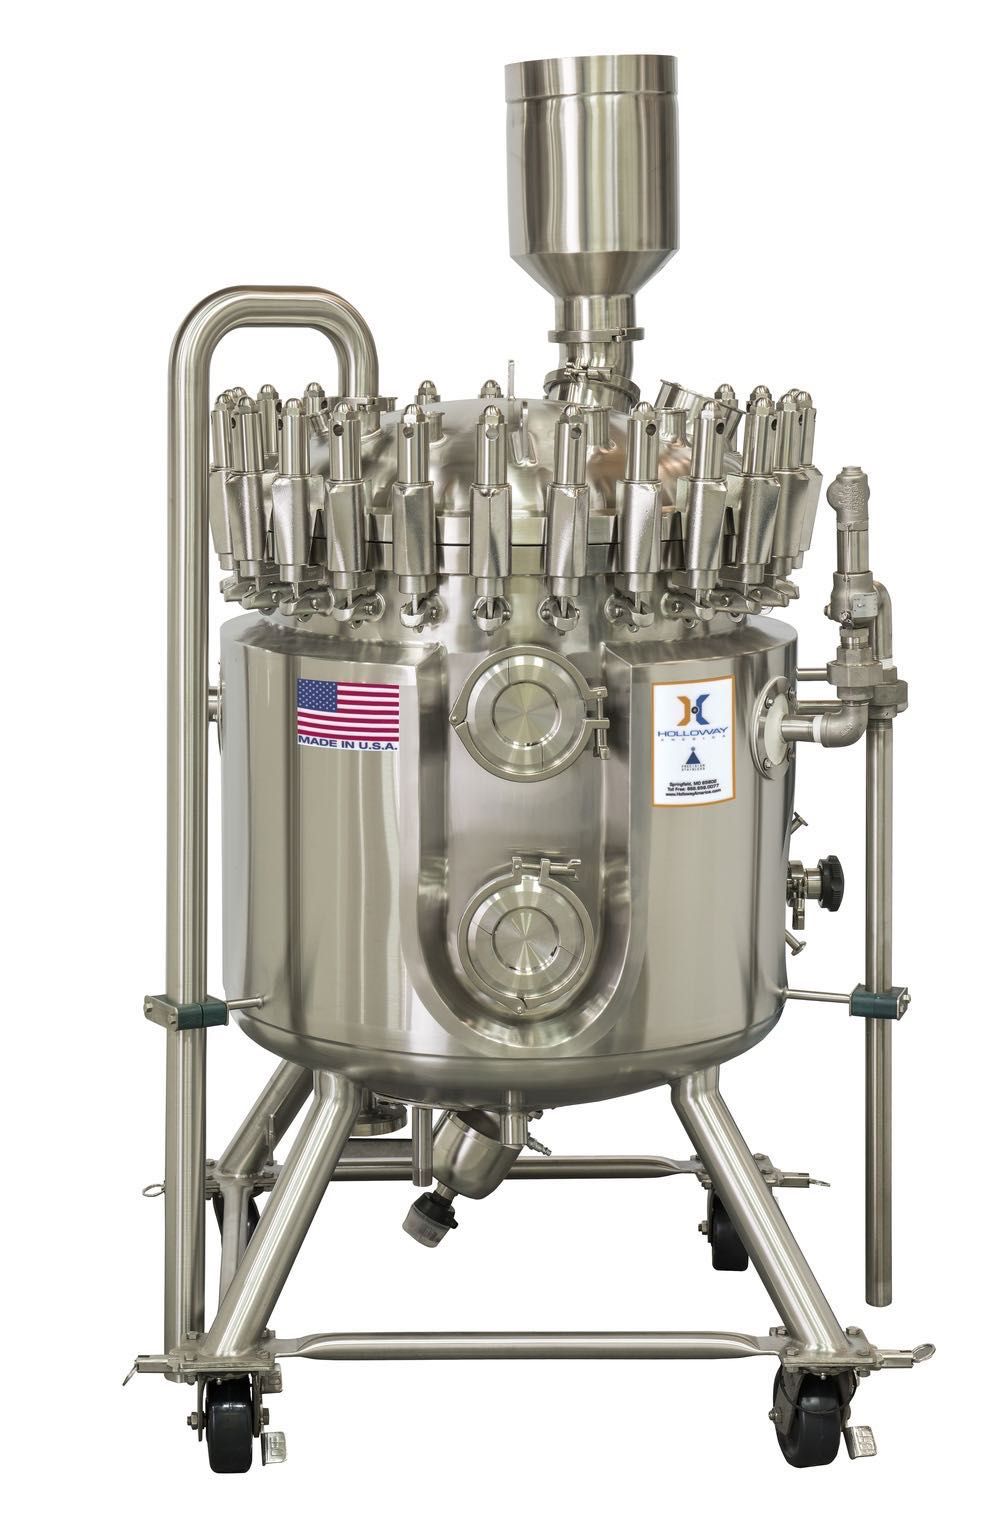 Like this stainless steel tank, HOLLOWAY pressure vessels are available as portable vessels.